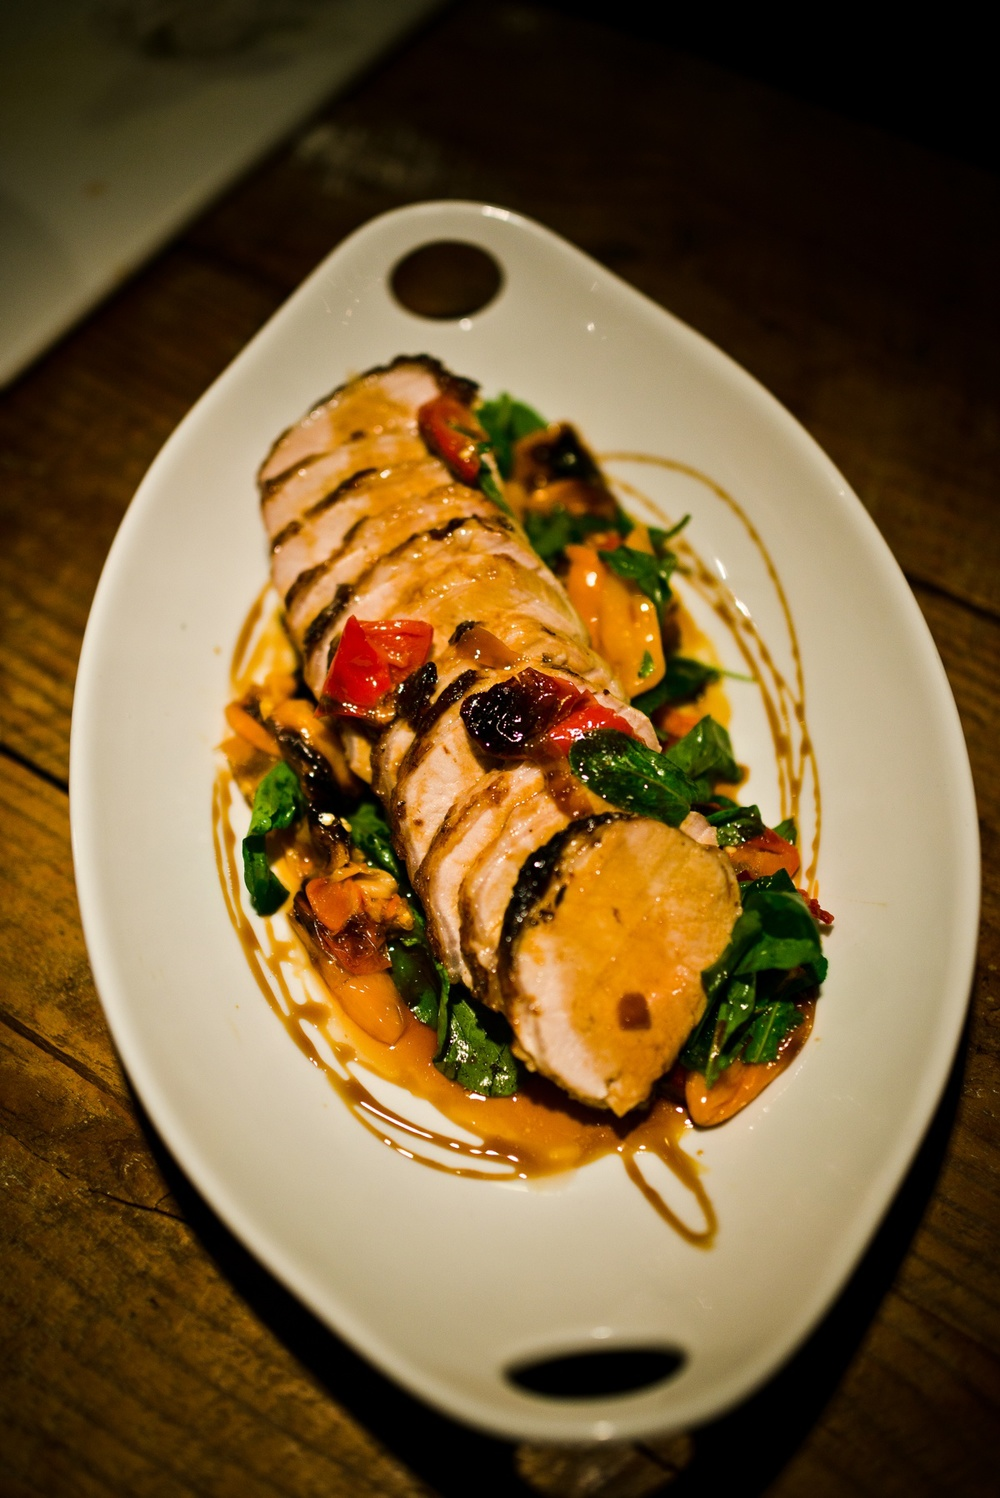 Homespun-ATL-Dinner_September-14-2014_Atlanta-GA_Photography-by-Blake-Burton_0002.jpg